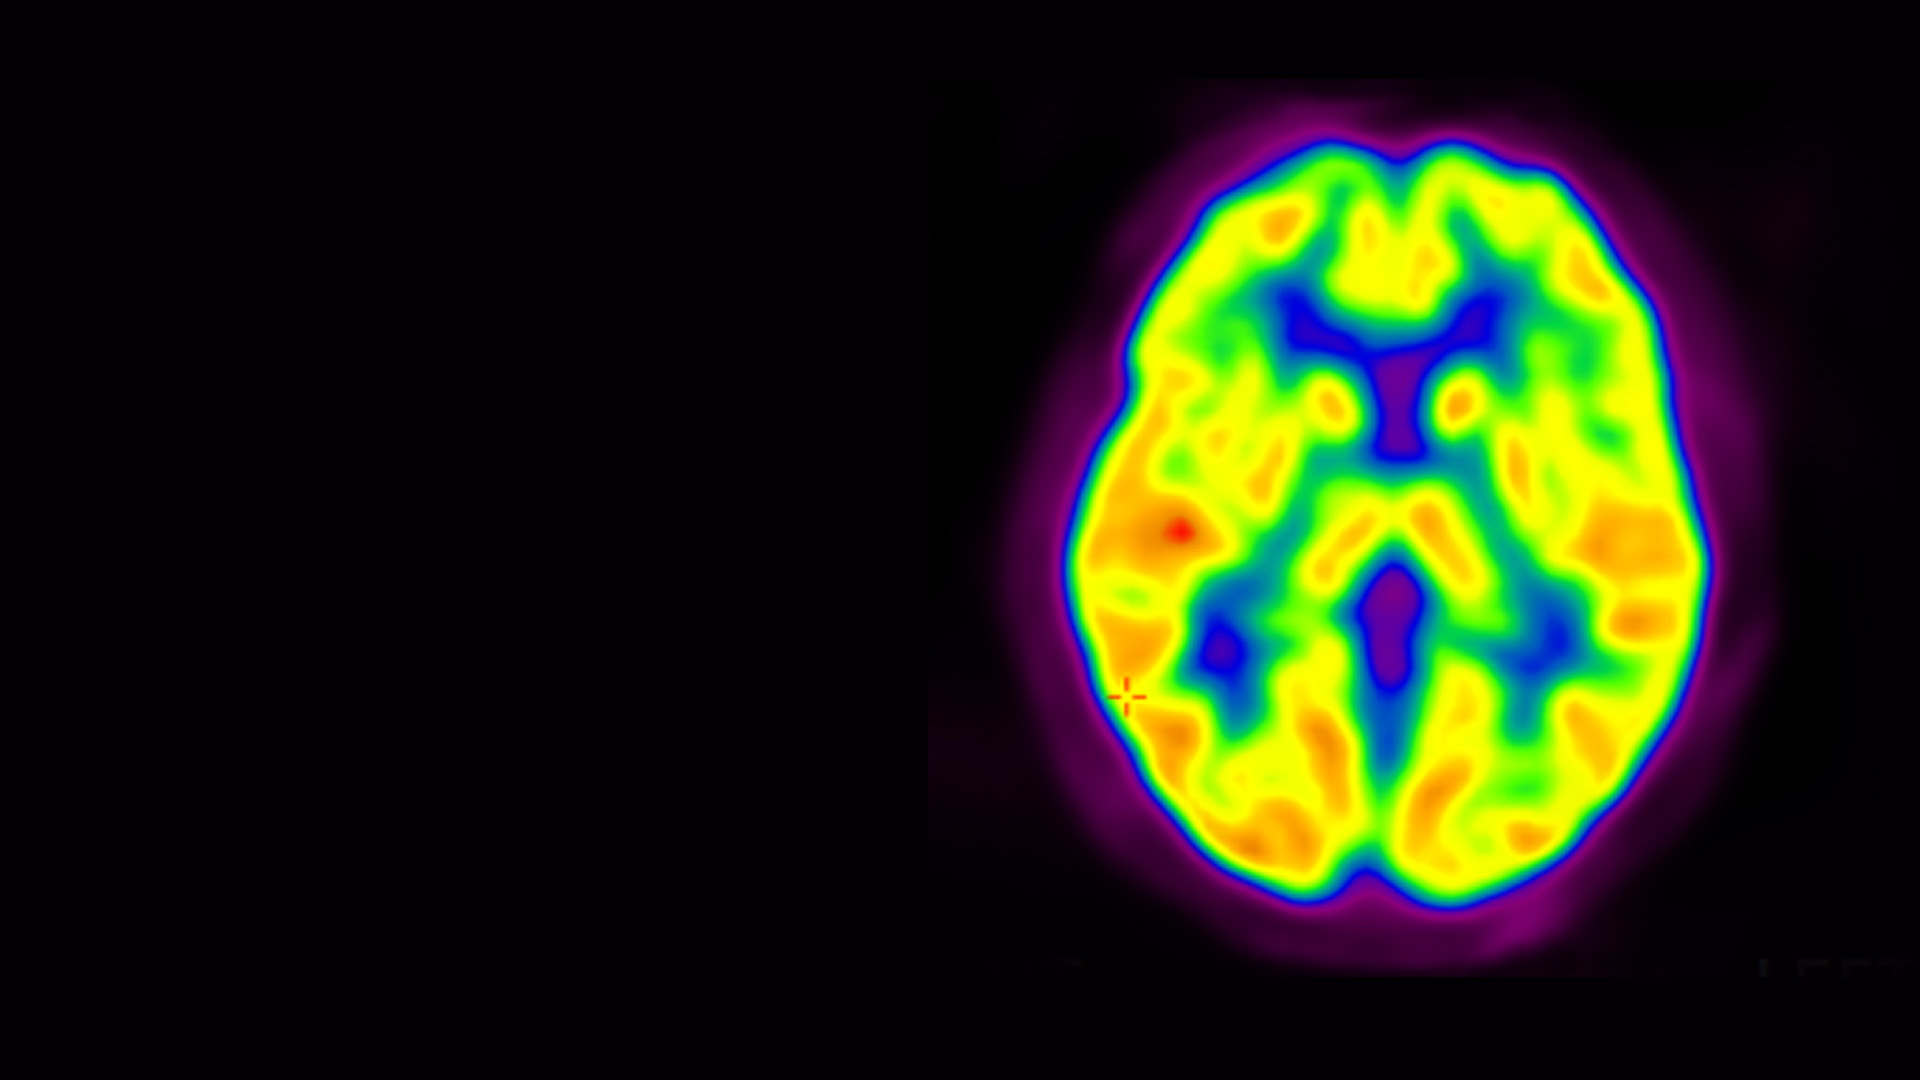 Understanding genetics, imaging technologies, and data from clinical studies provide neurocientists new insights into how the brain works